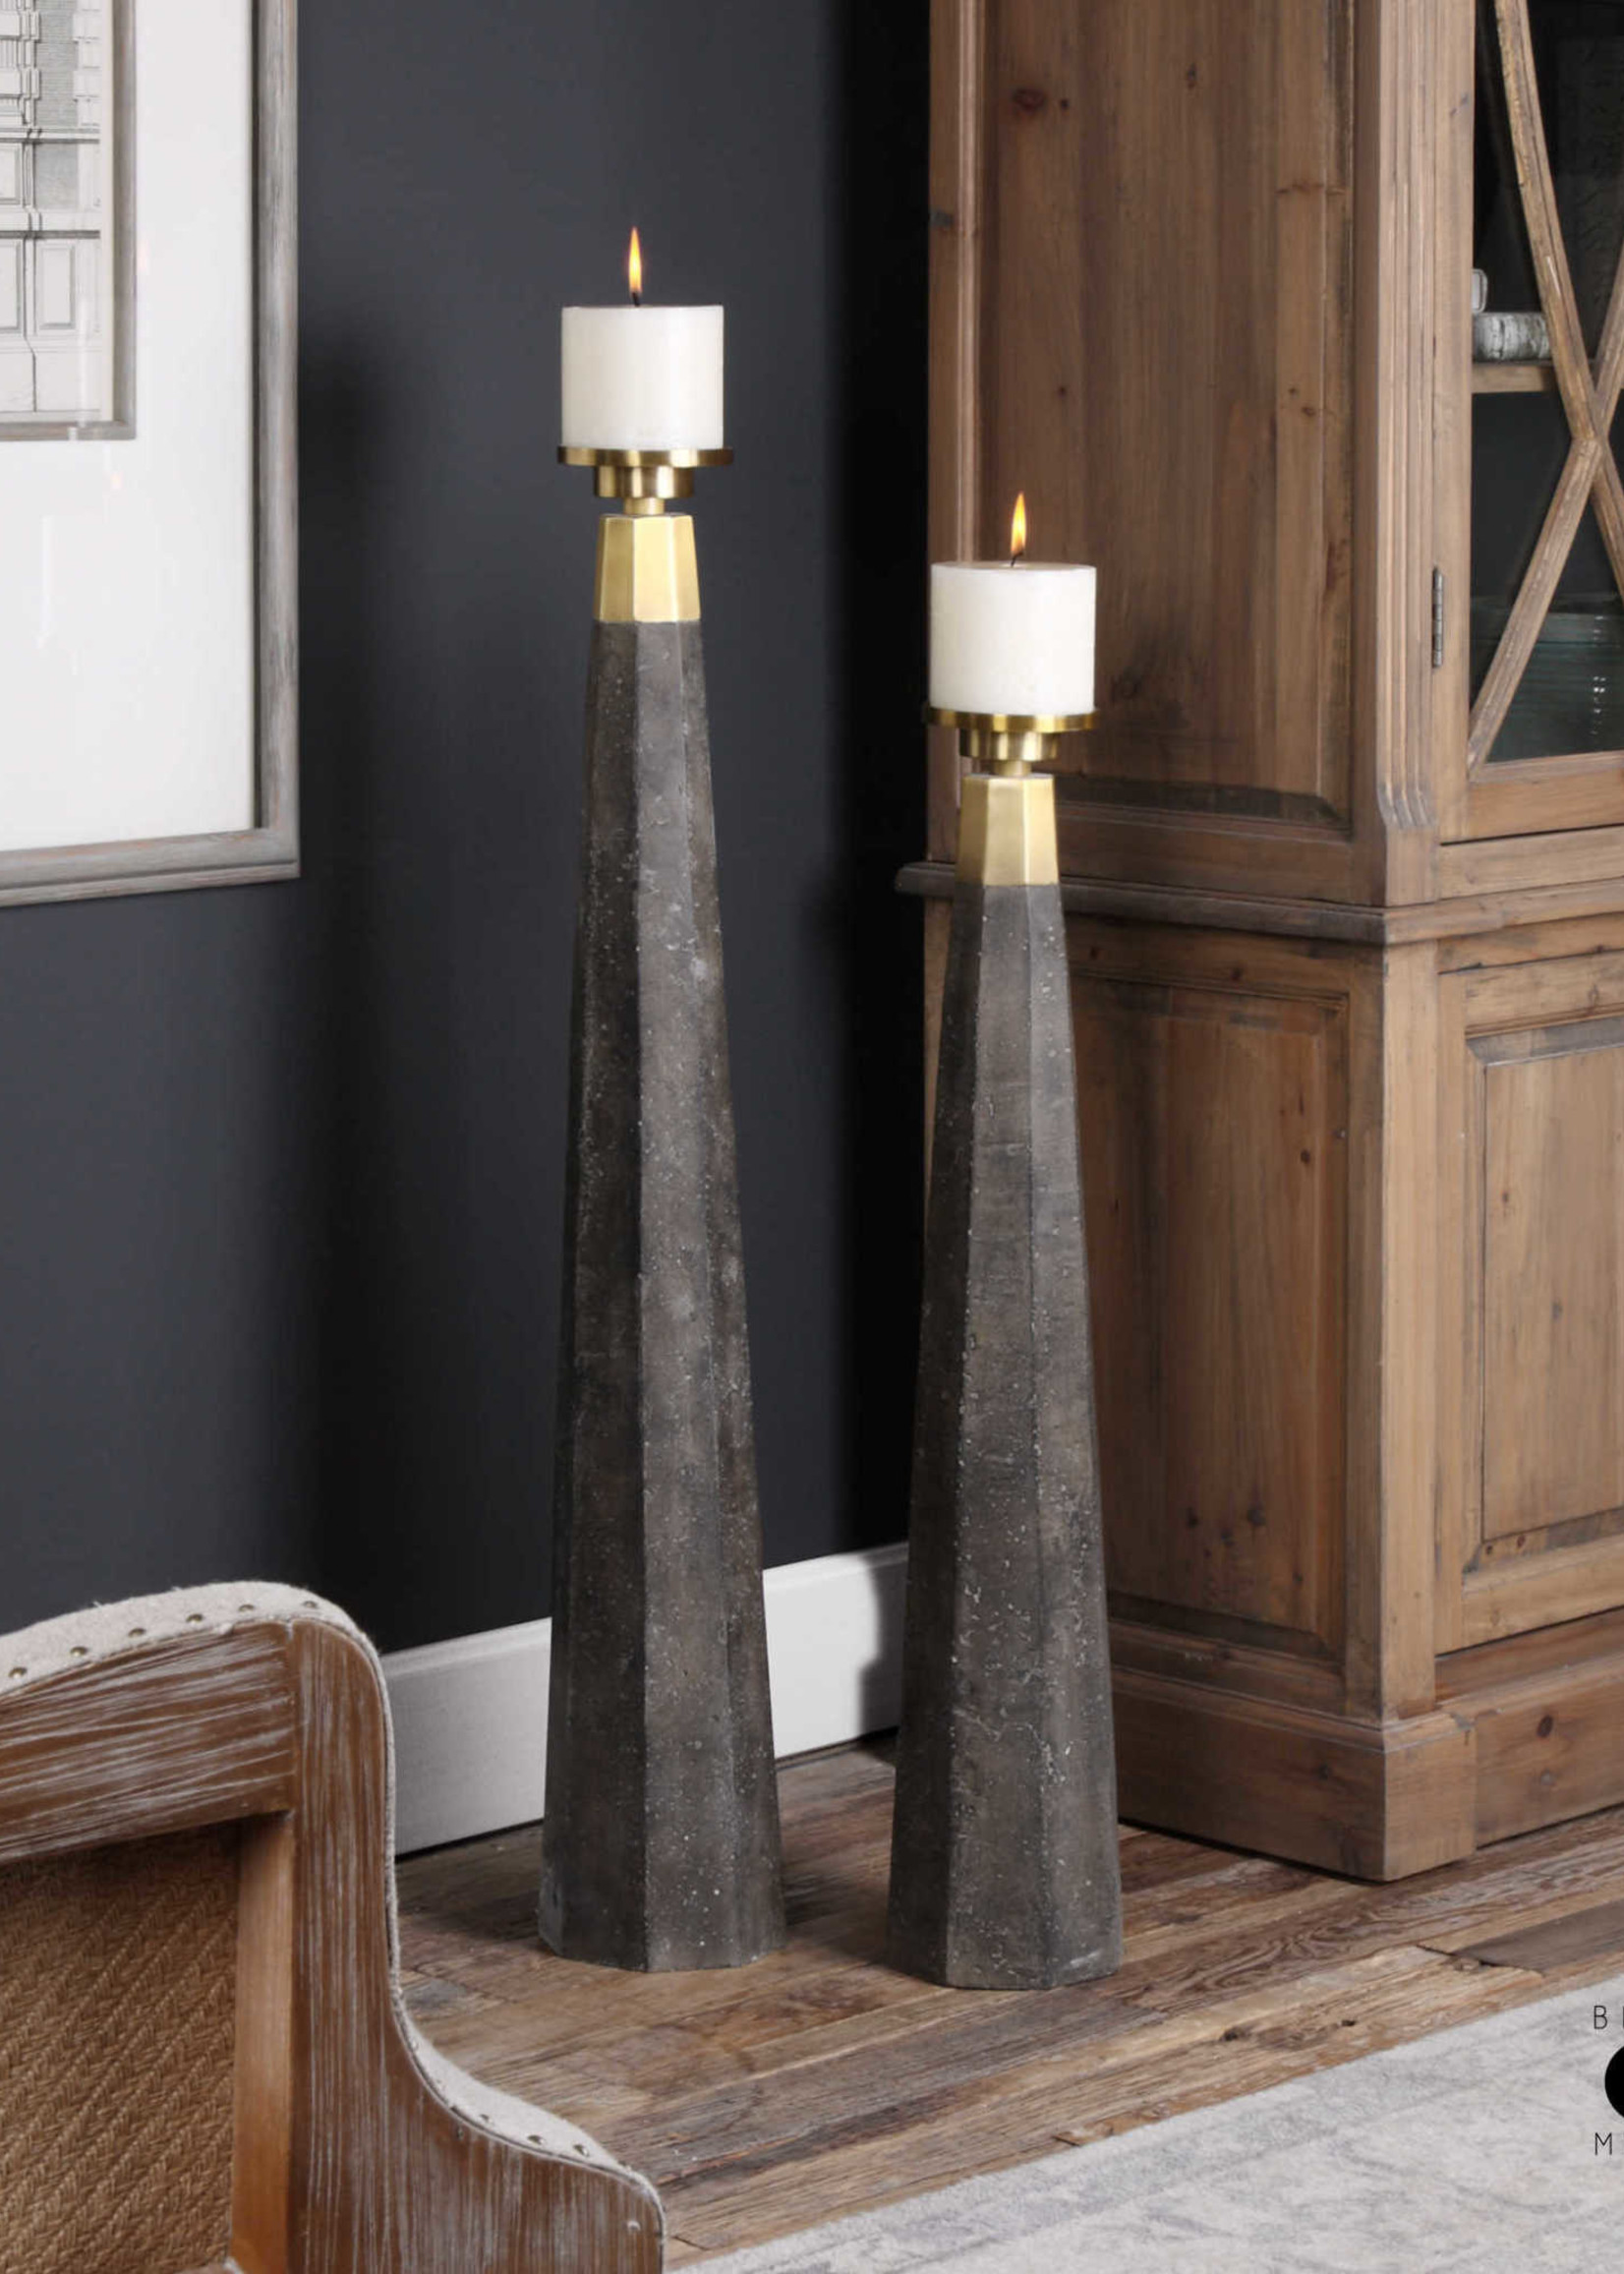 Uttermost / Revelation Pons Candleholder with Pillar Candle - Small